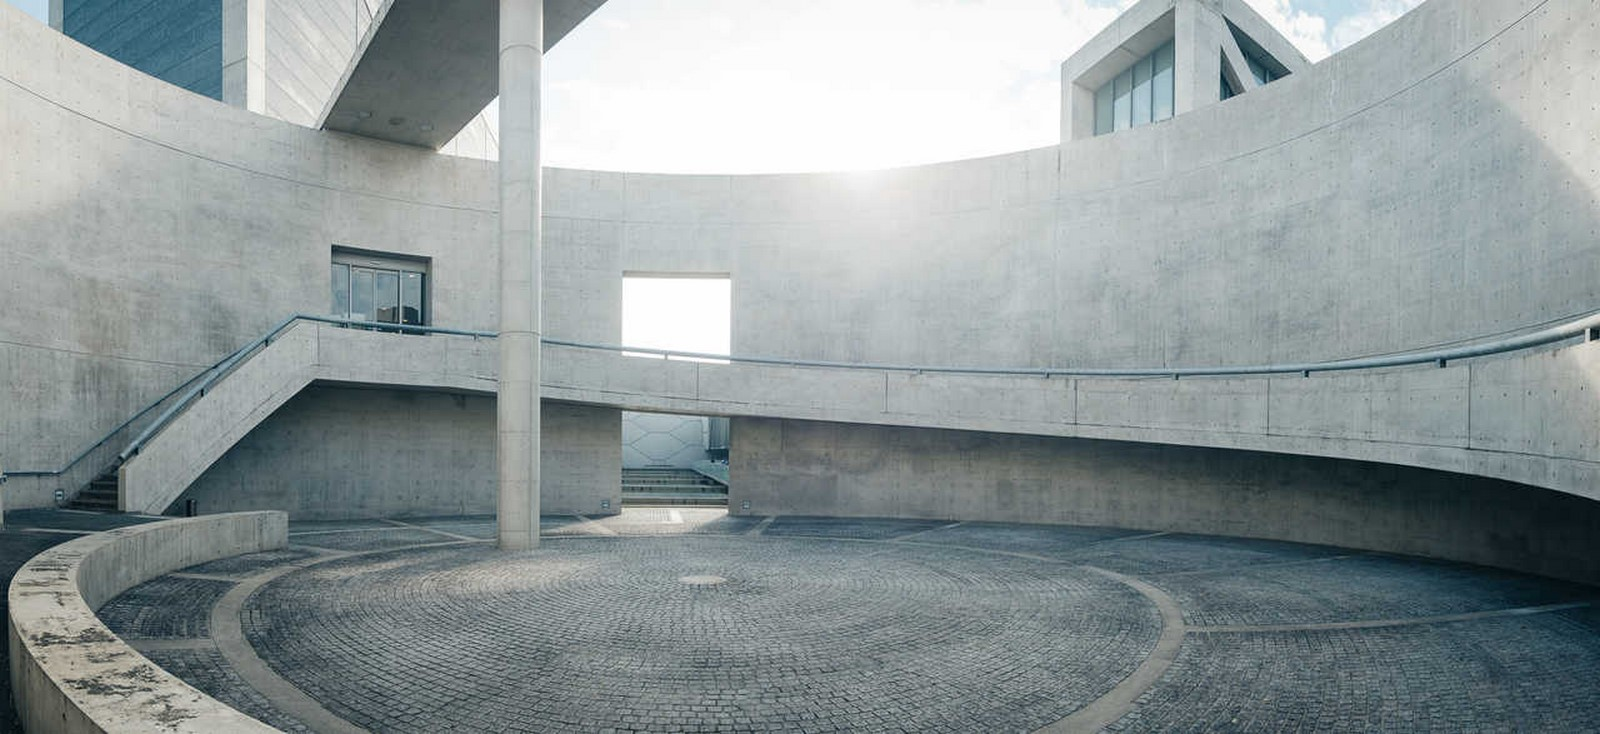 Osaka Prefectural Sayamaike Museum by Tadao Ando: Water and Architecture - Sheet5